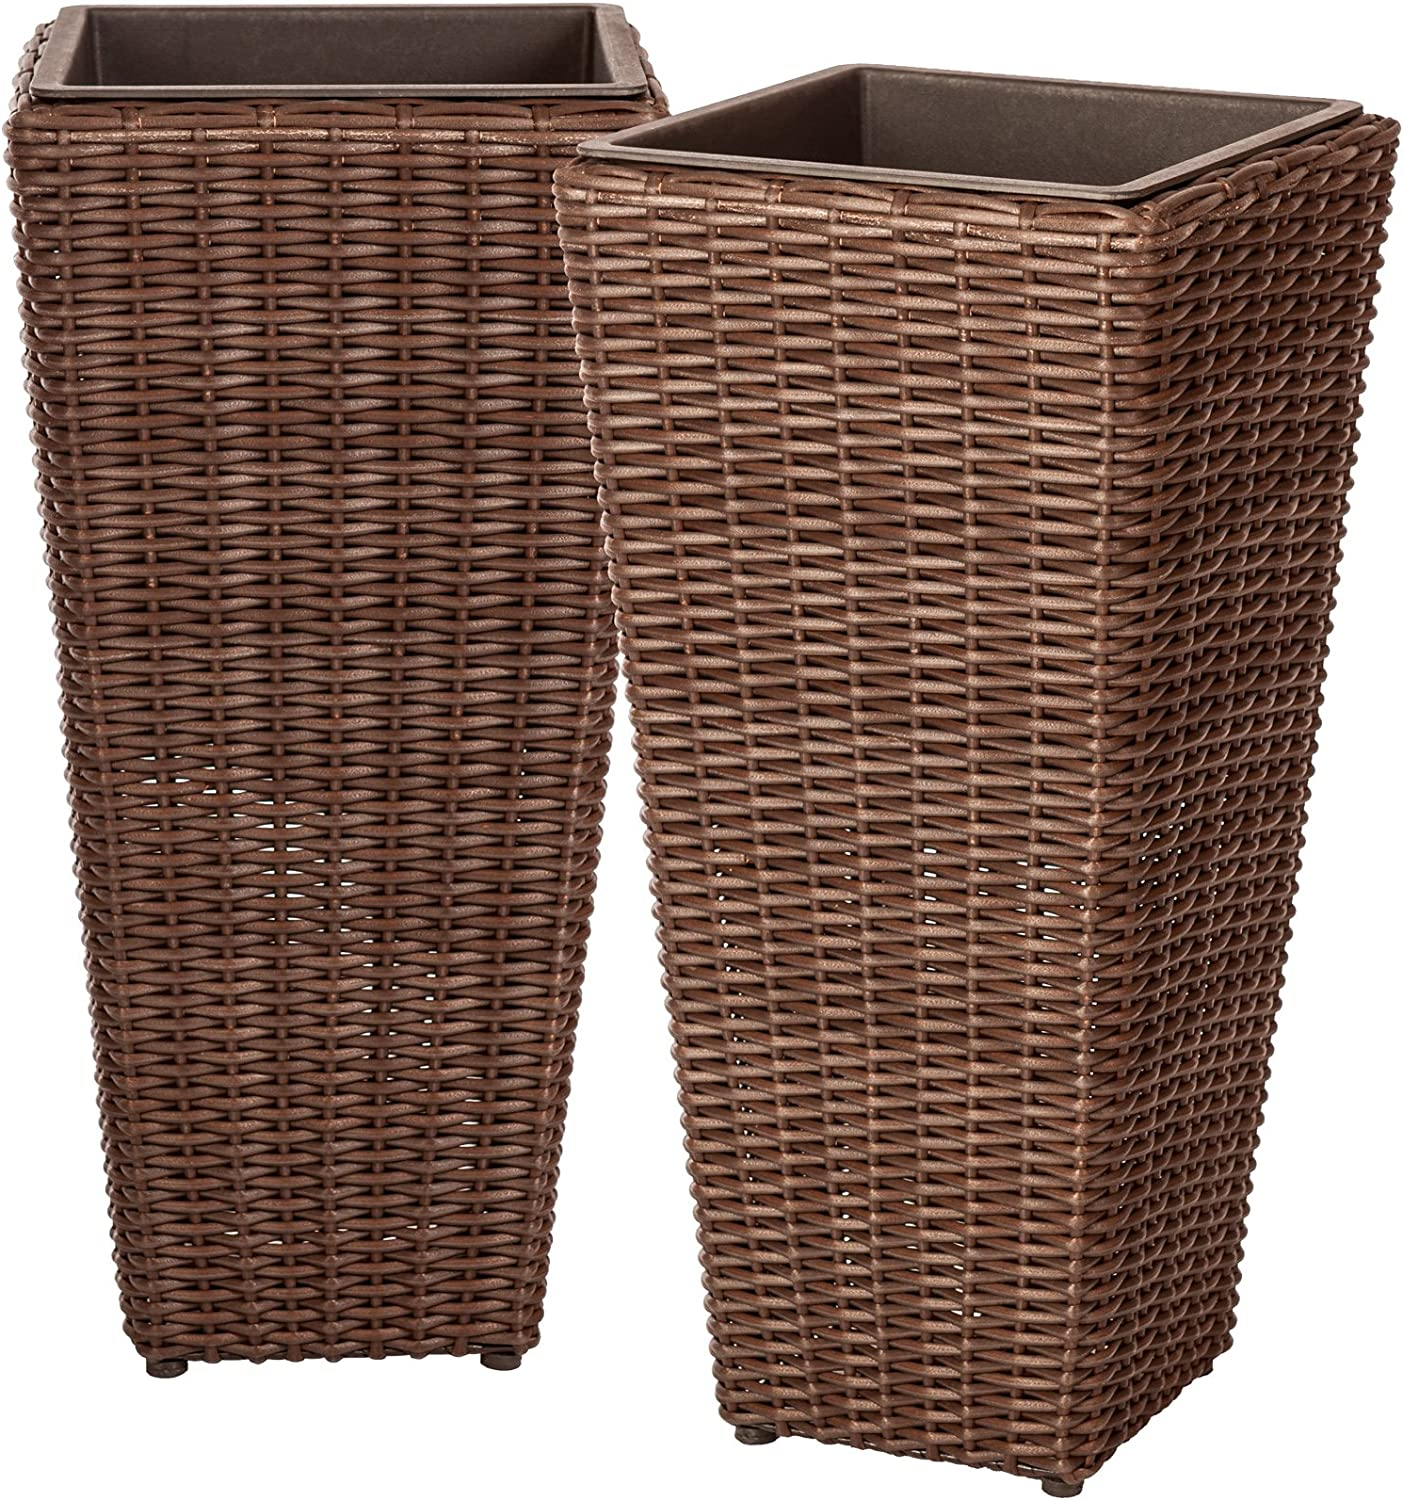 Patio Sense Alto Wicker Planter (2 Piece) Set with Liners | Tall Plant Decor Box for Outdoors